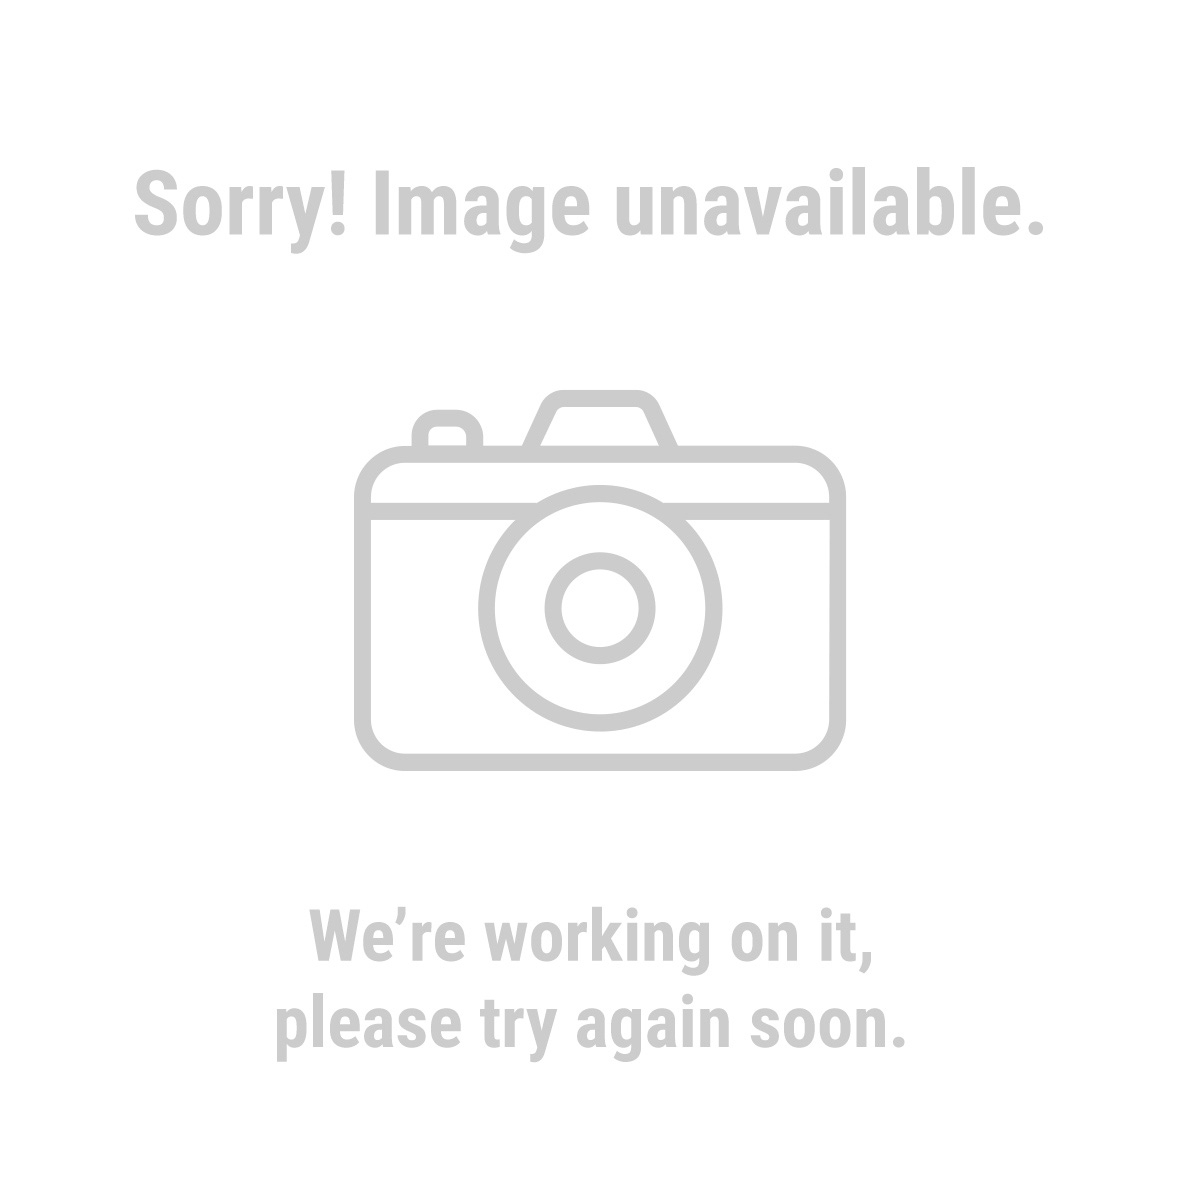 Pittsburgh Automotive 60386 1100 Lb. Electric Hoist with Remote Control